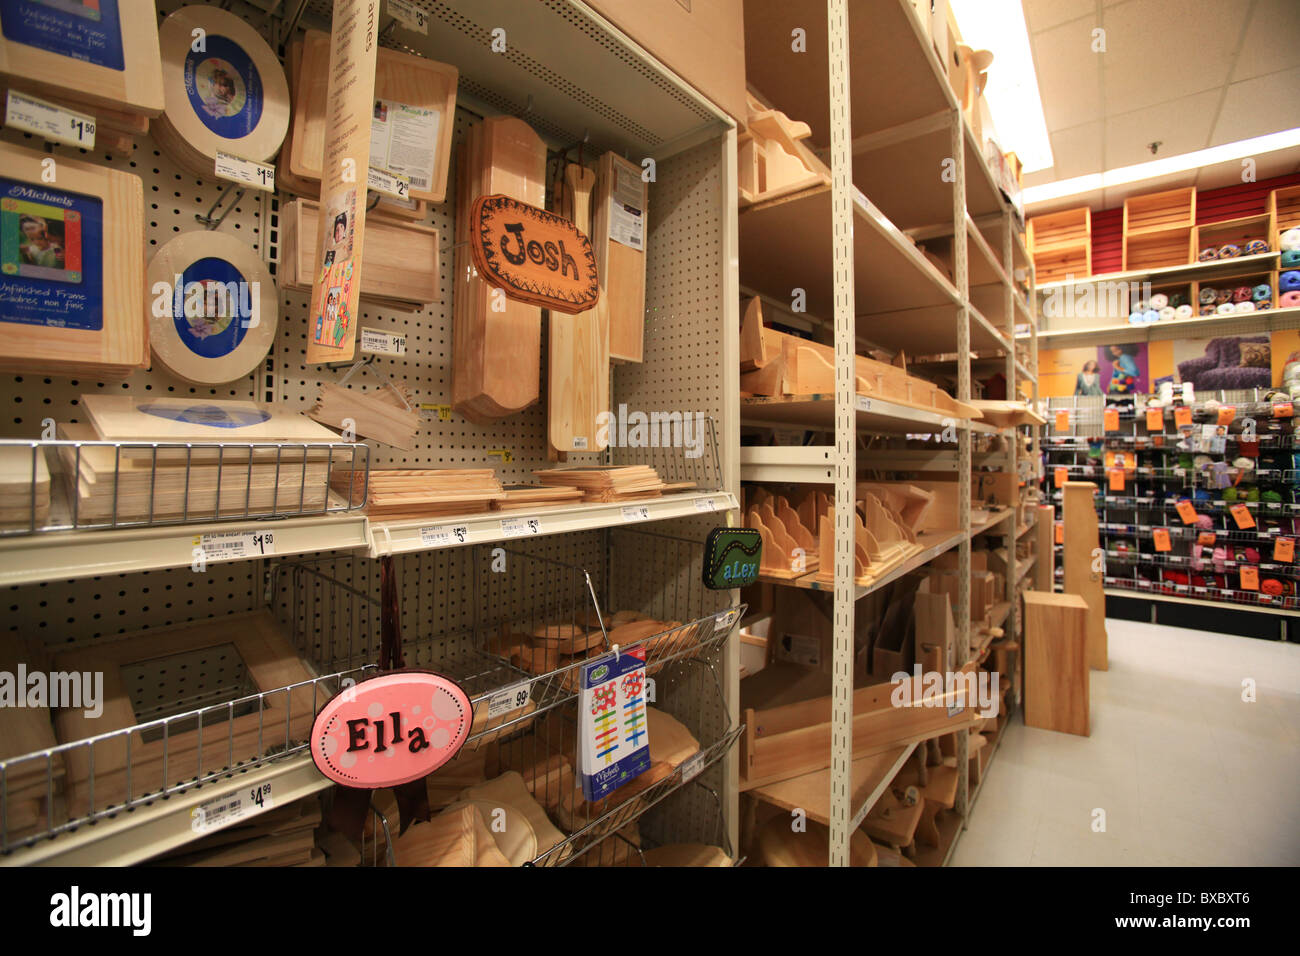 Wooden Crafts For Sale In Michael S Store In Ontario Canada